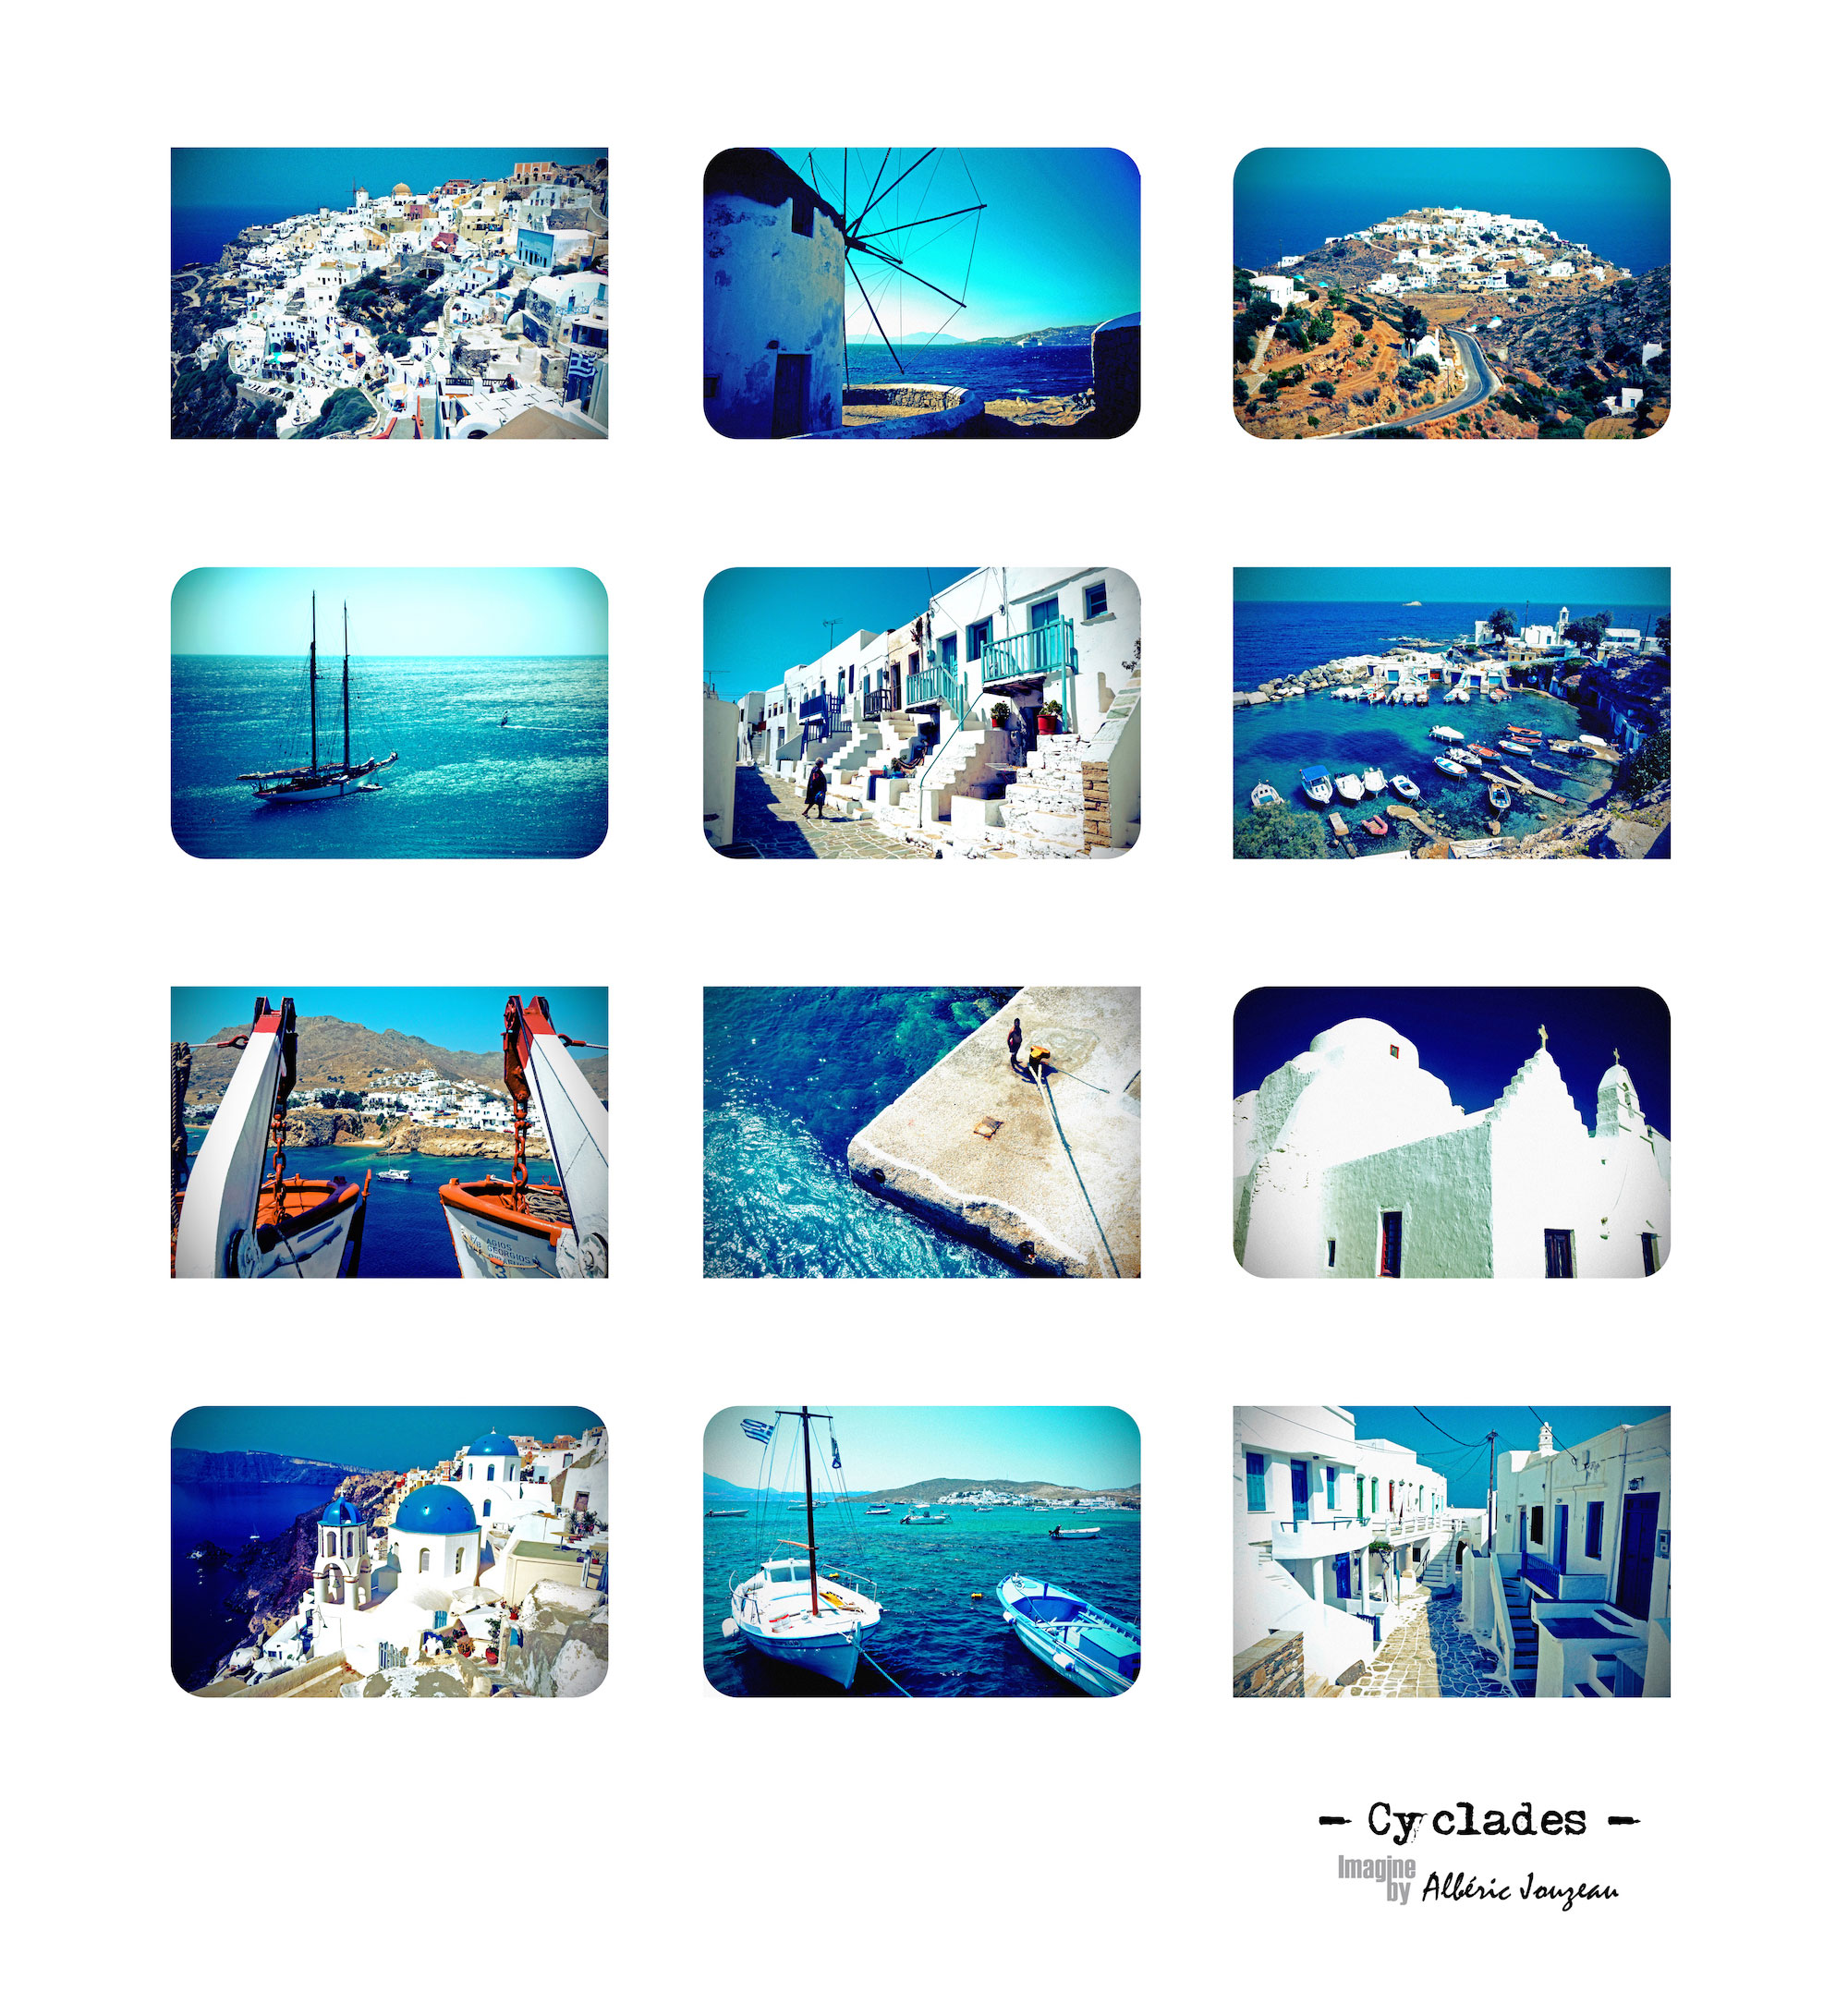 cyclades-compo-alberic-jouzeau-imagine-tableau